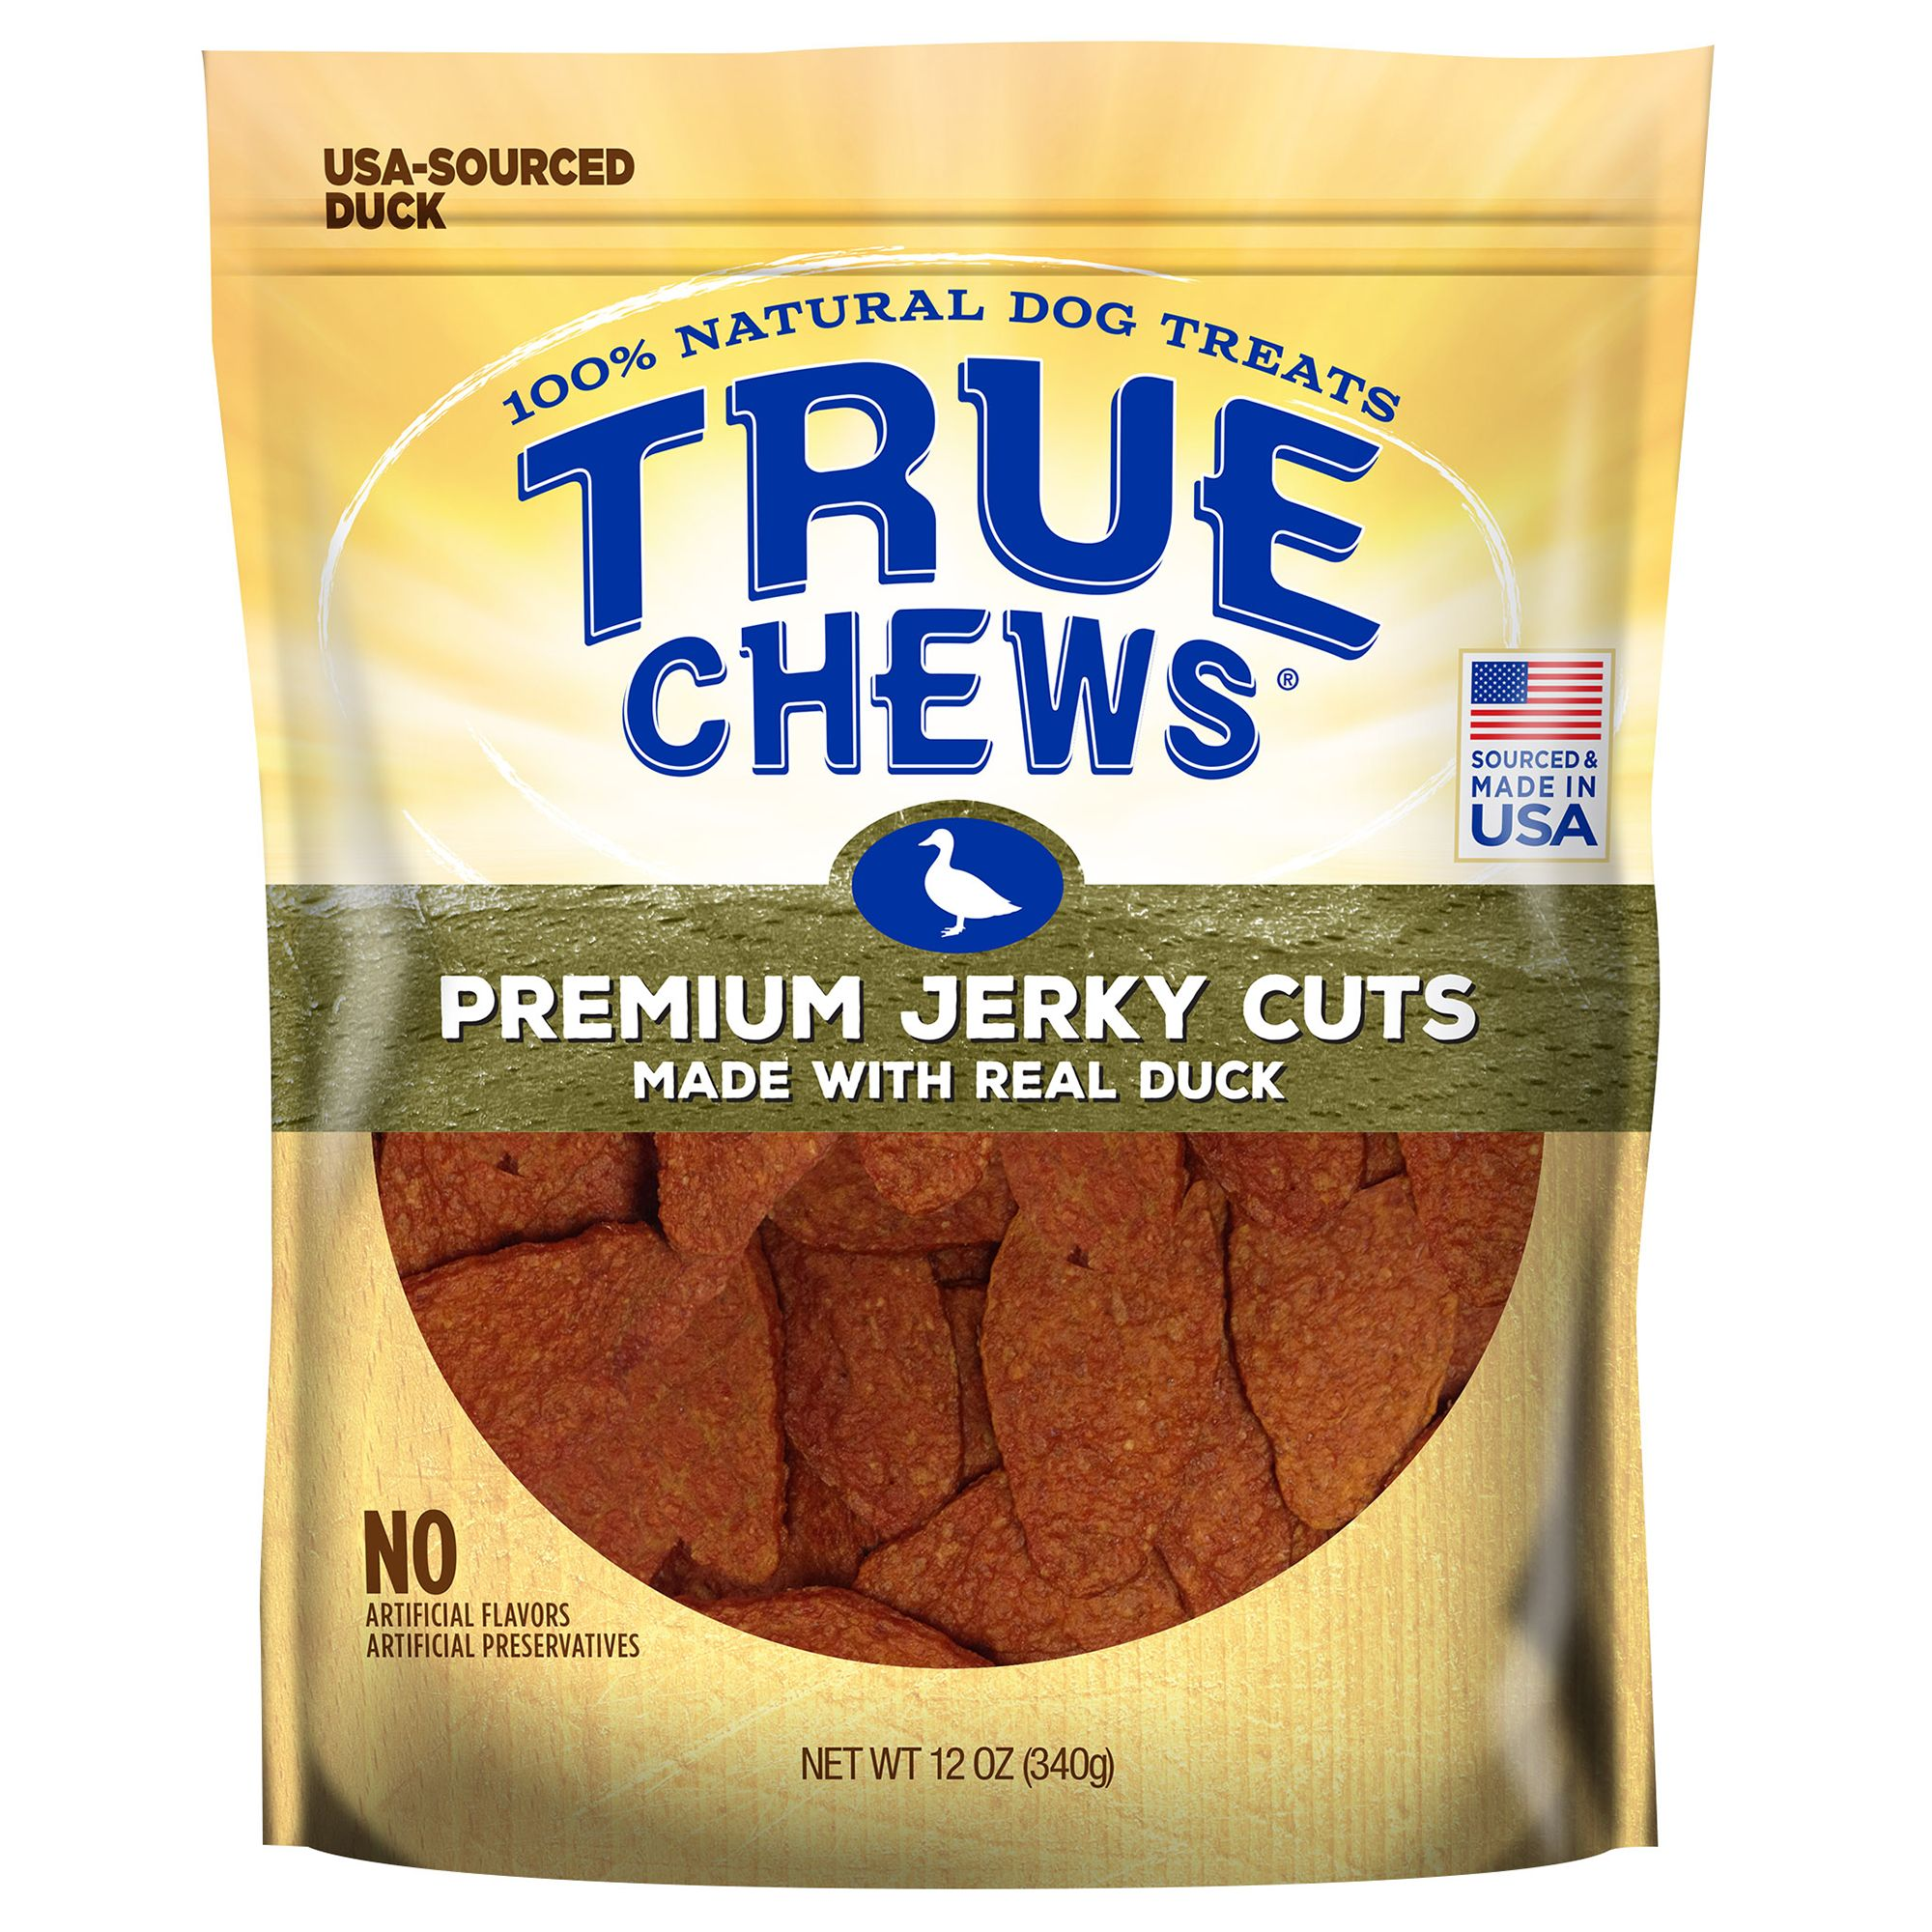 True Chews Premium Jerky Cuts Dog Treat - Natural, Duck size: 12 Oz, Puppy to Senior 5211722